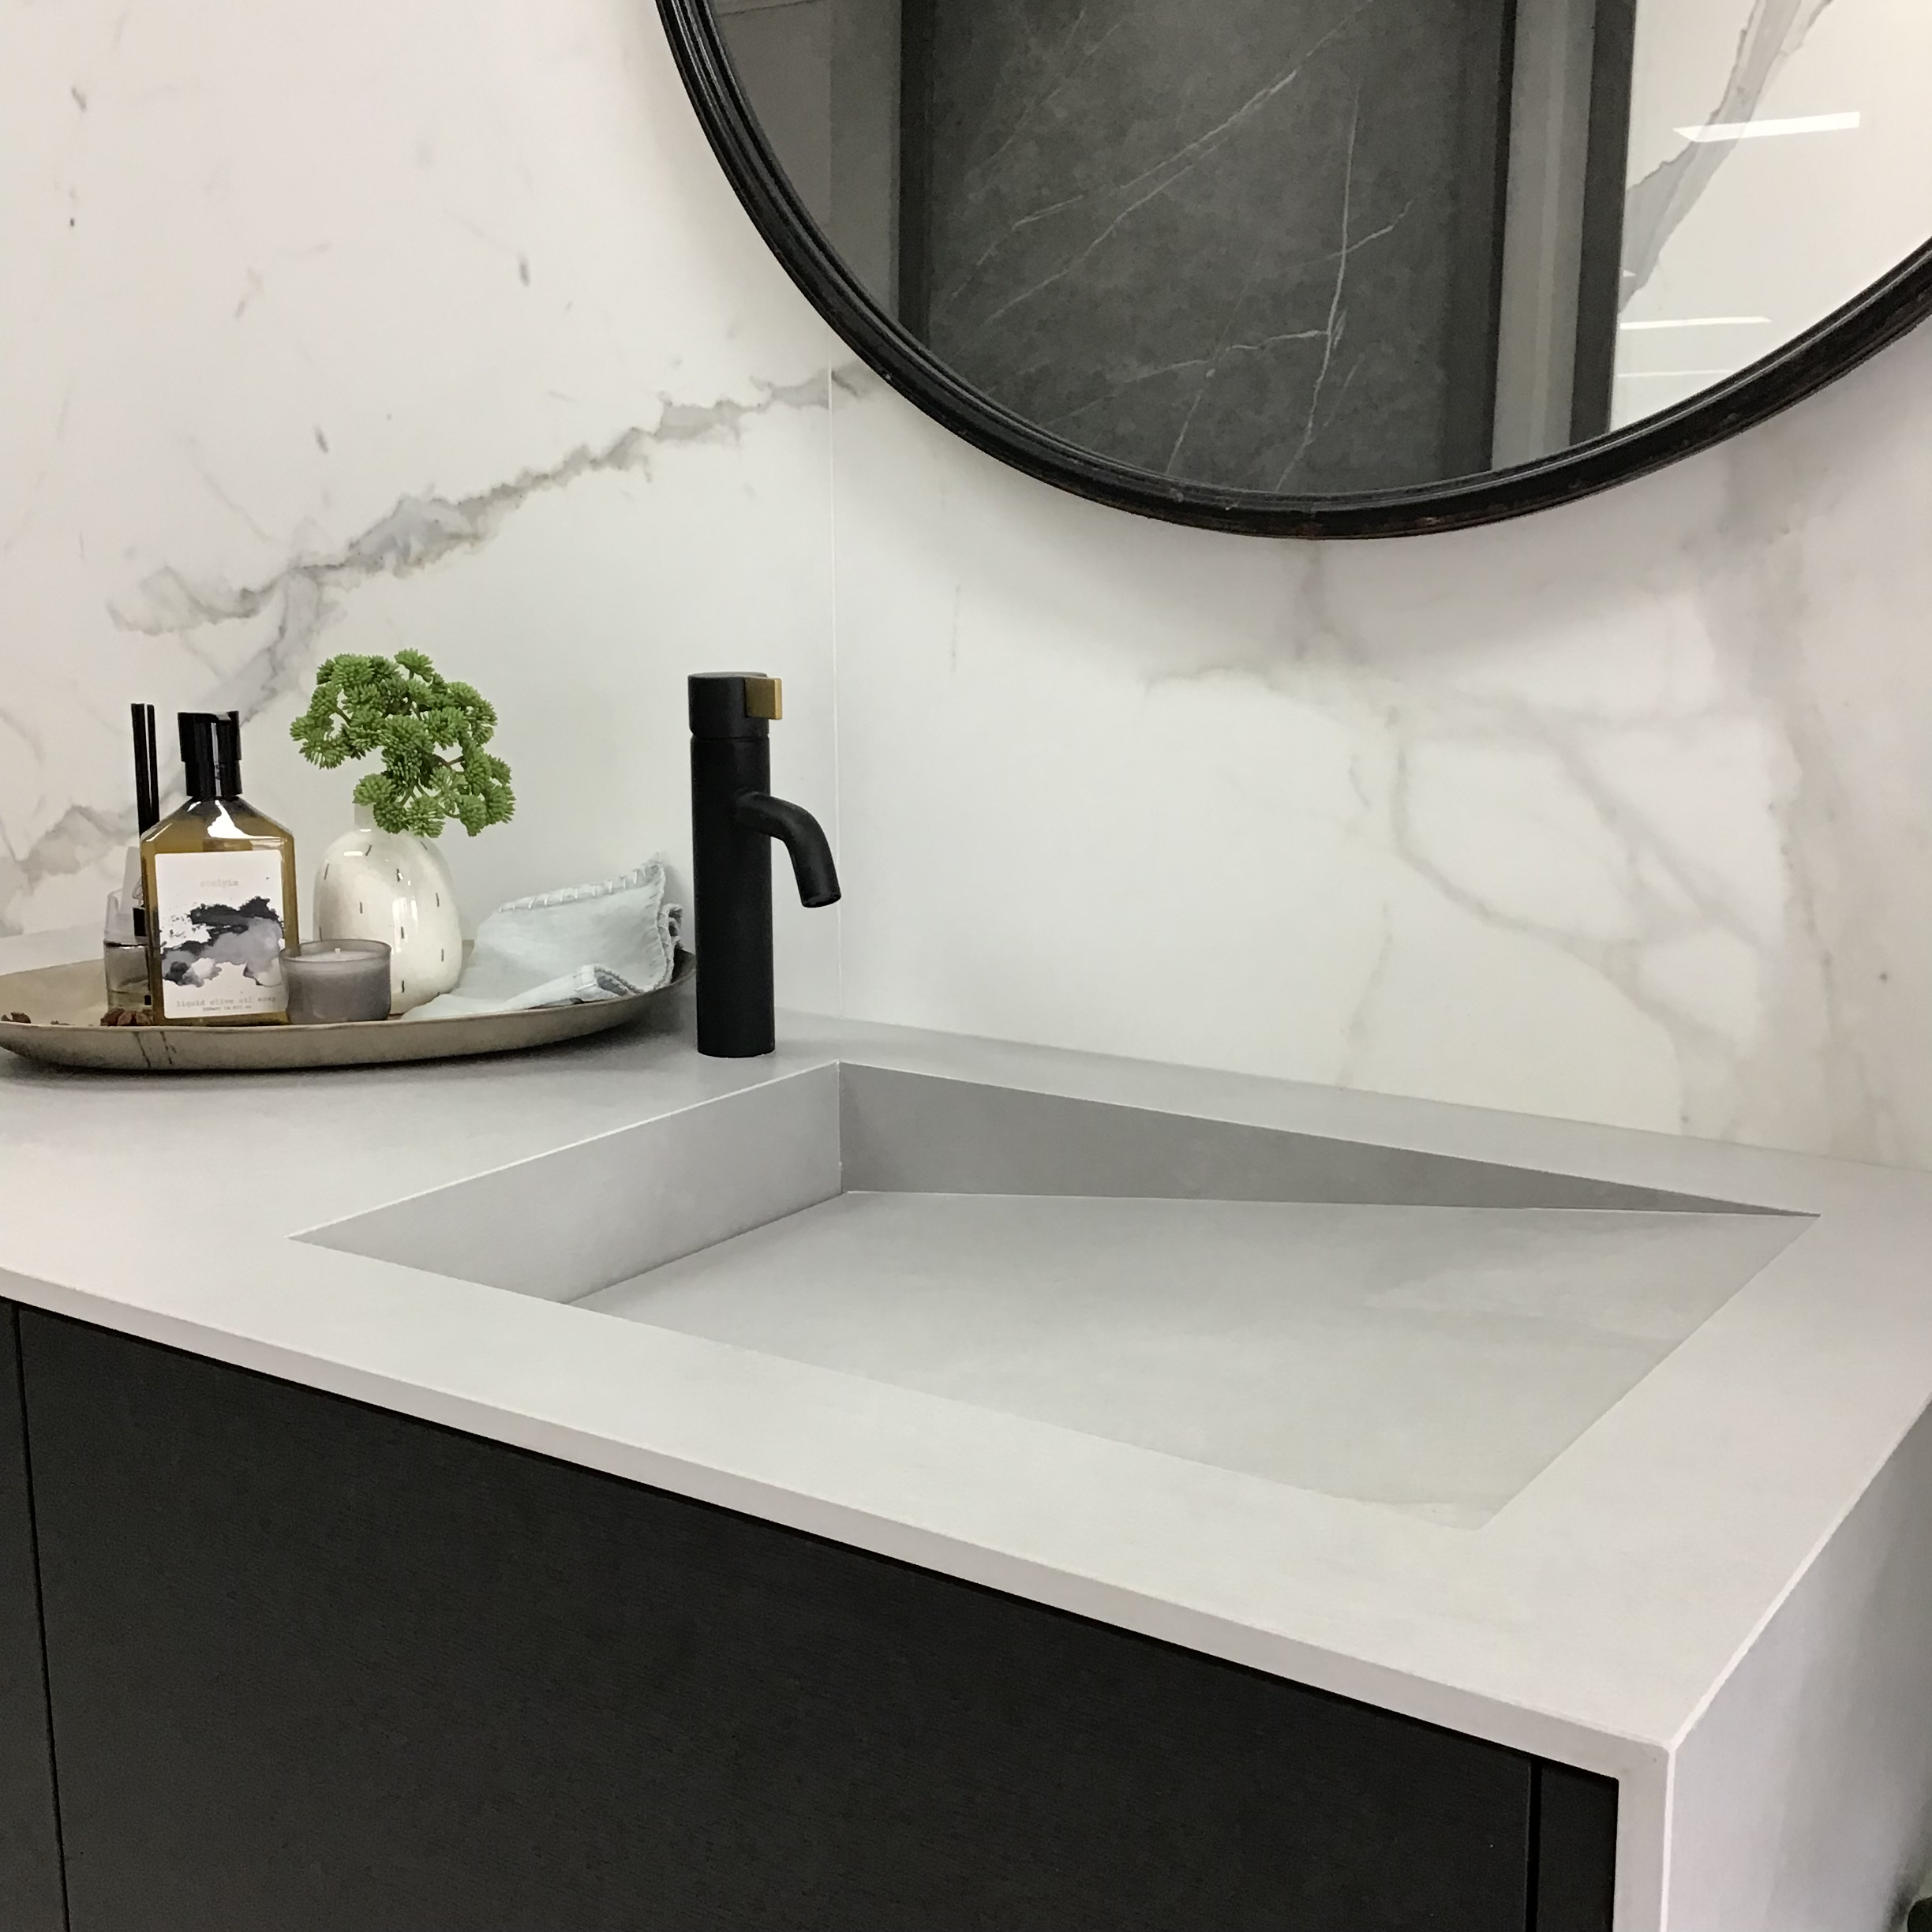 marble bravvo stone basin with vanity mirror